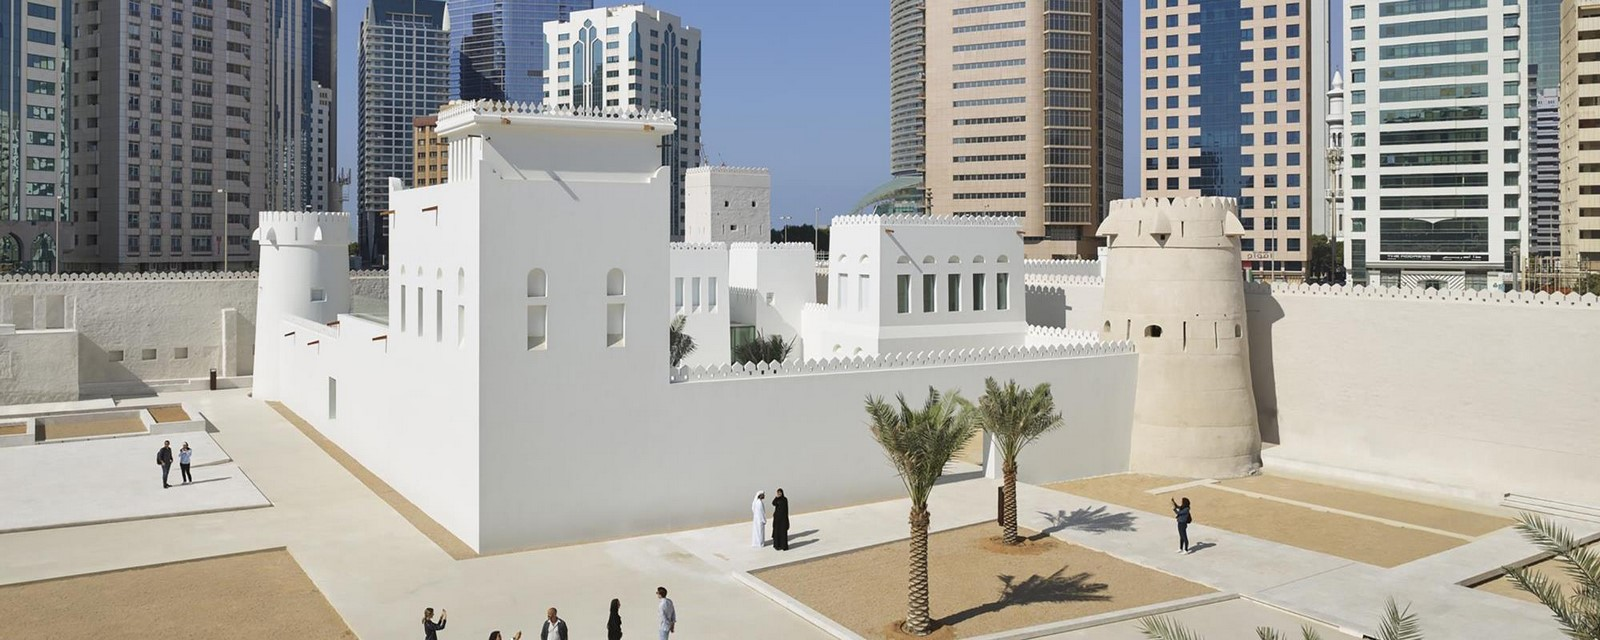 10 Structures that represent the Historical architecture of UAE - Sheet2